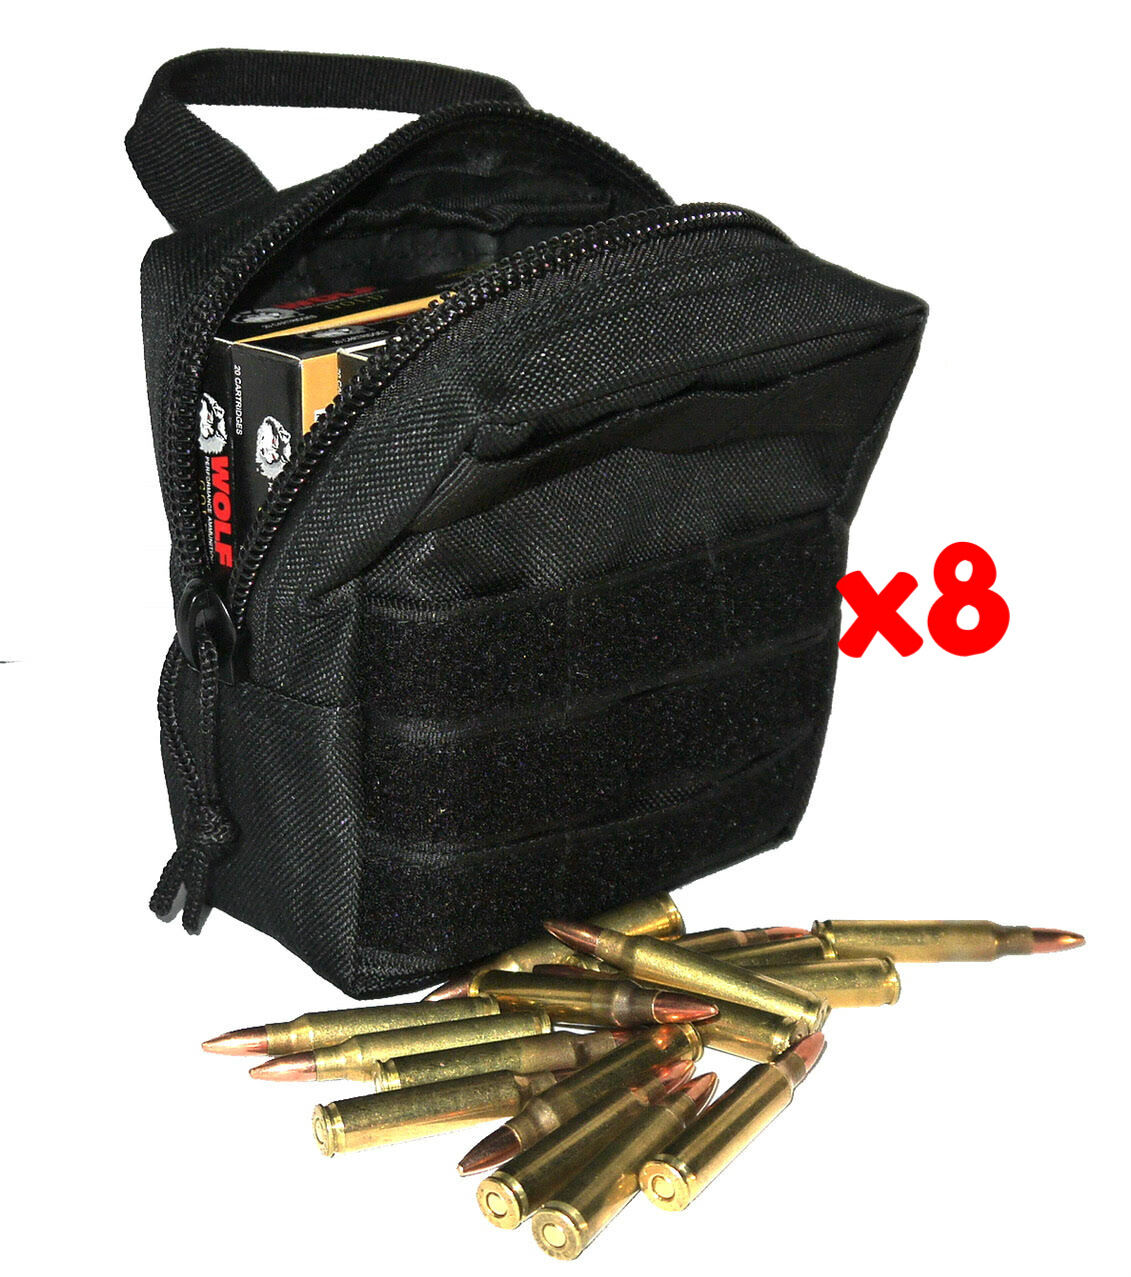 (8) SHOTGUN SHELL AMMO MODULAR MOLLE UTILITY POUCHES FRONT HOOK LOOP STRAP